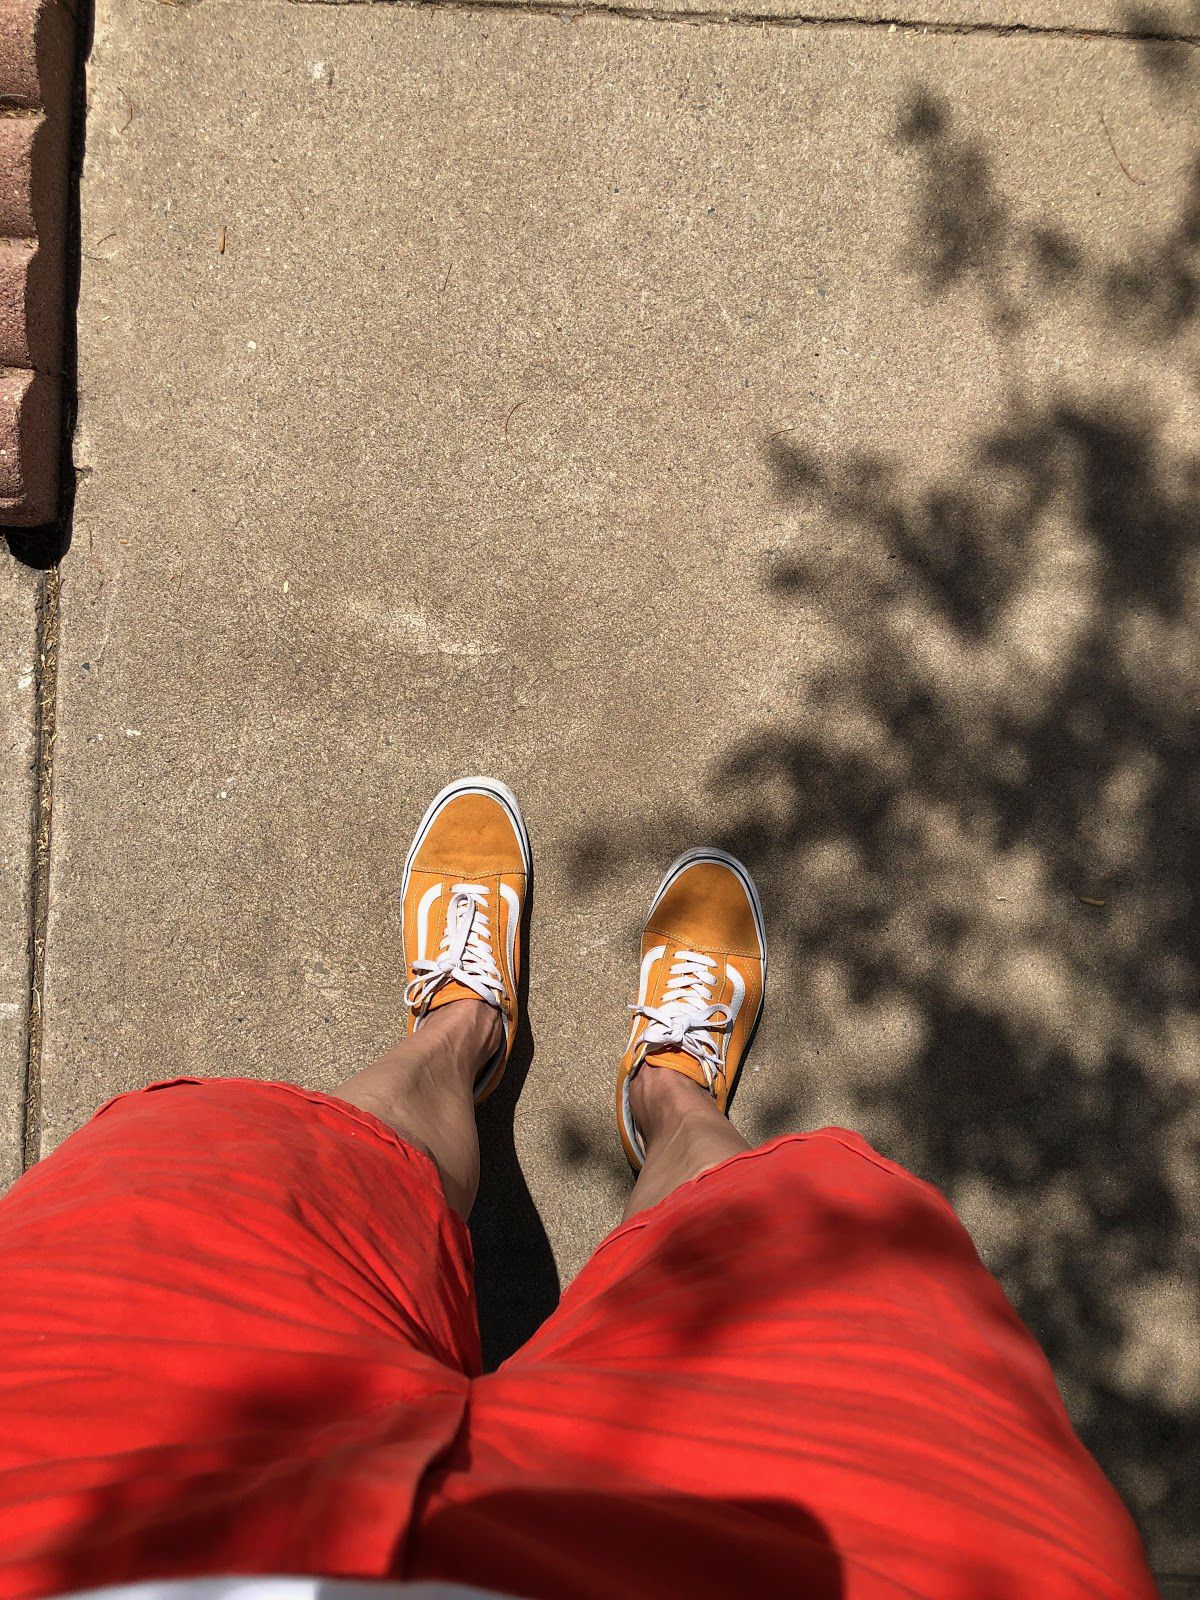 A photo taken from the perspective of the person wearing them shows a pair of bright orange shoes on the sidewalk.